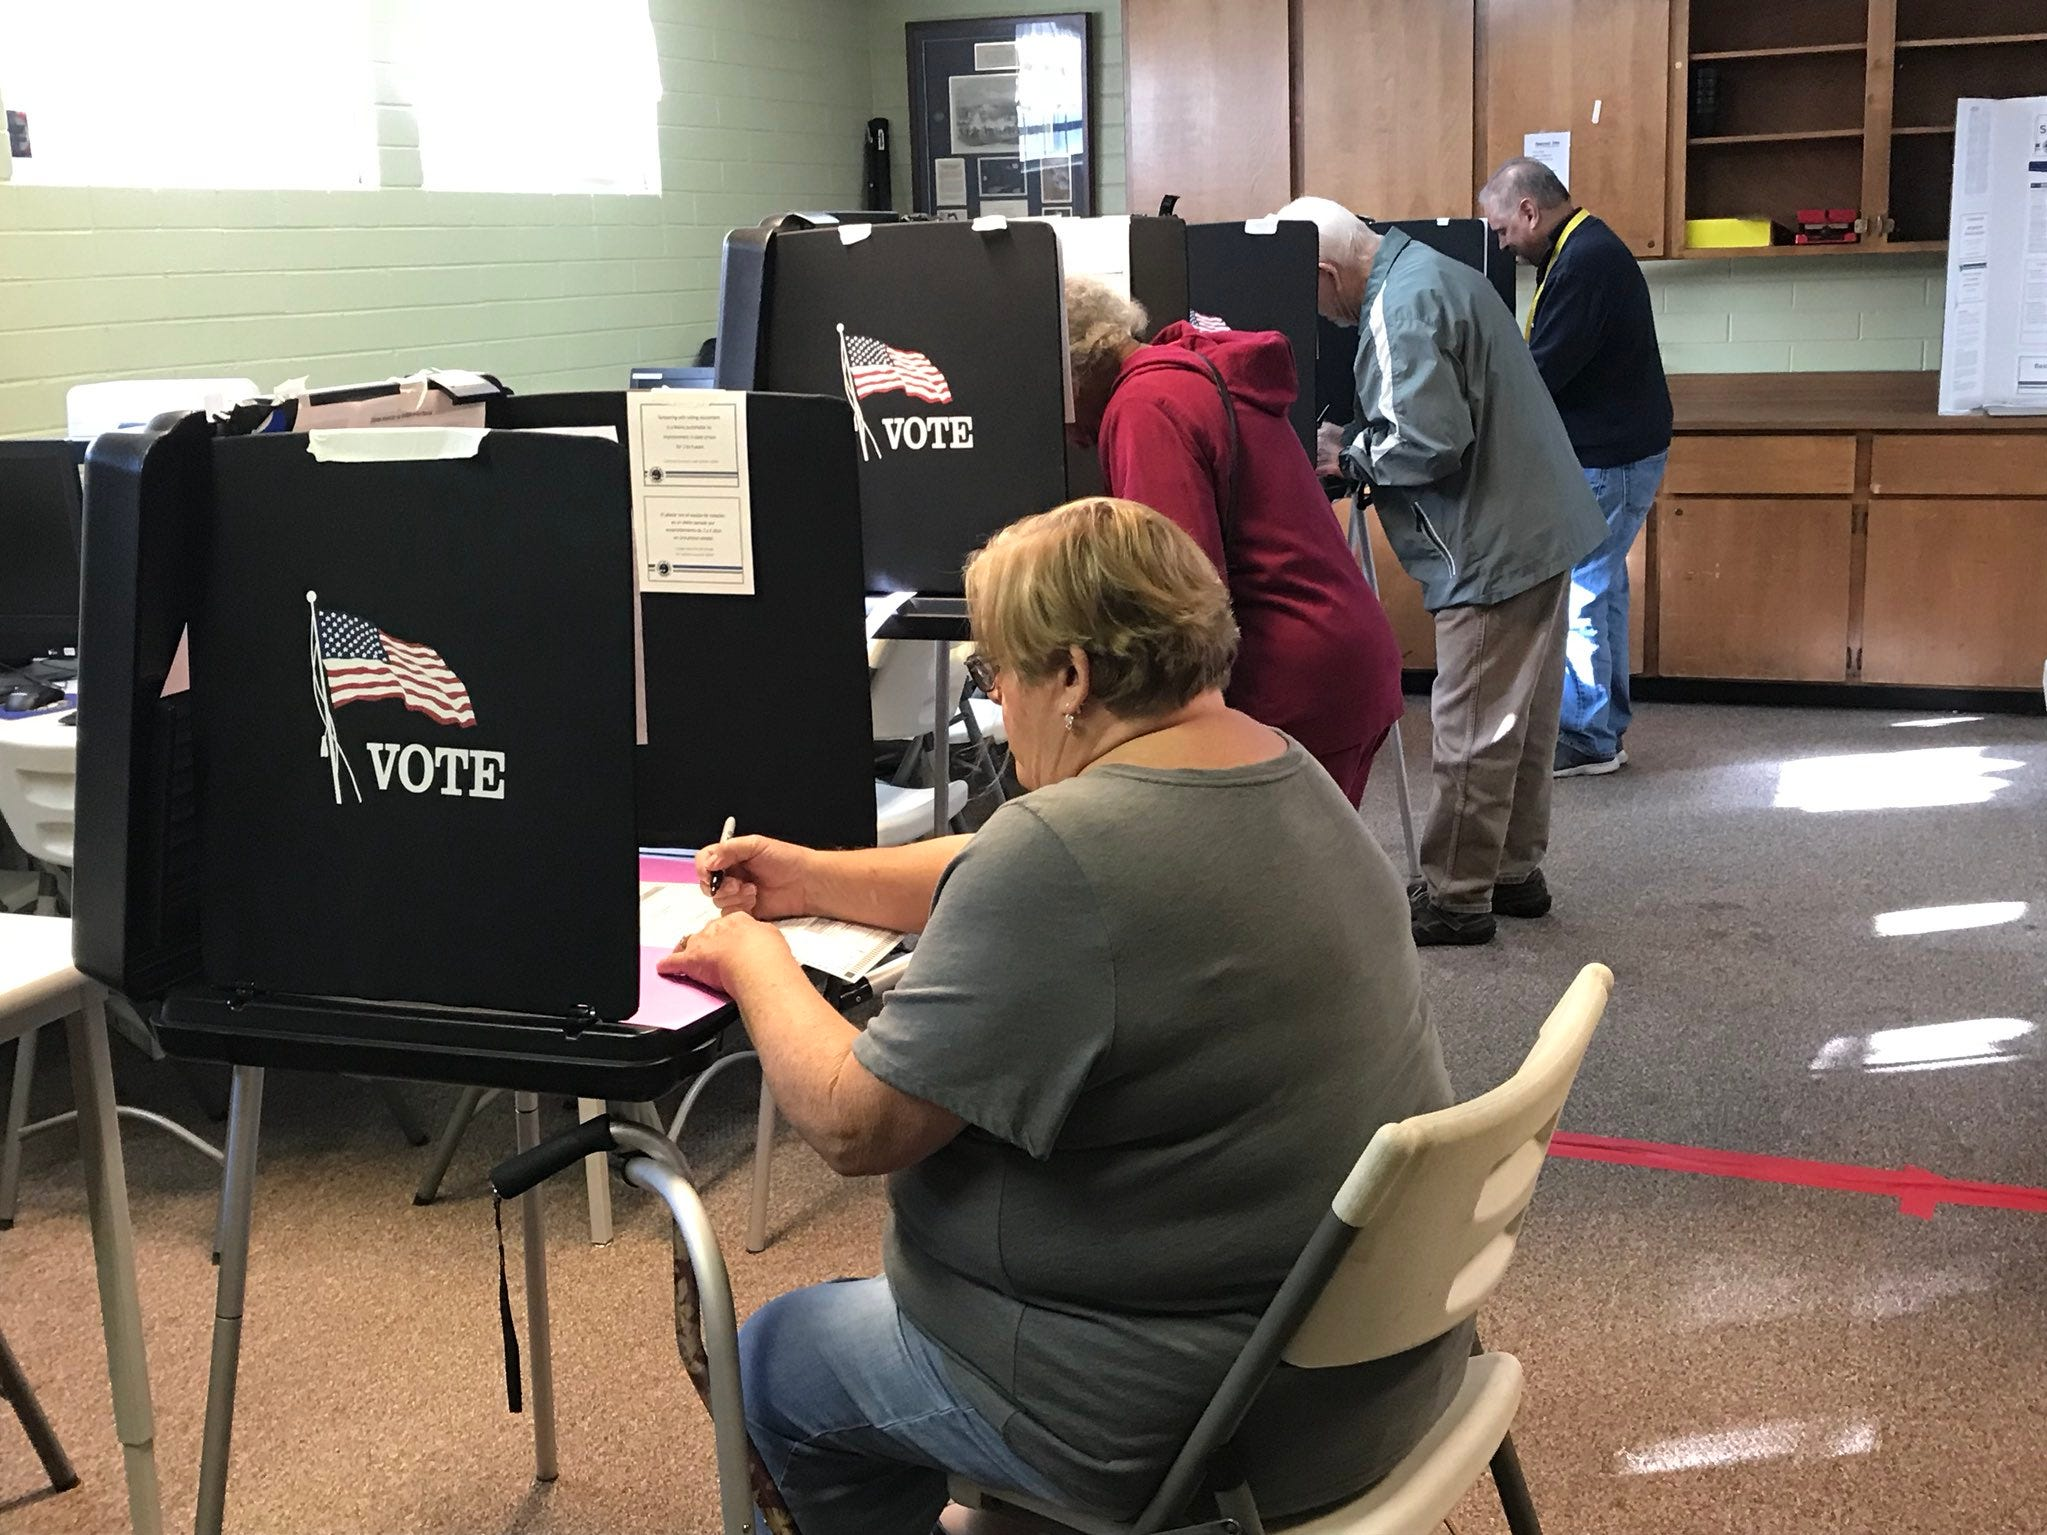 Redding voters cast ballots at the Martin Luther King Jr. Center.